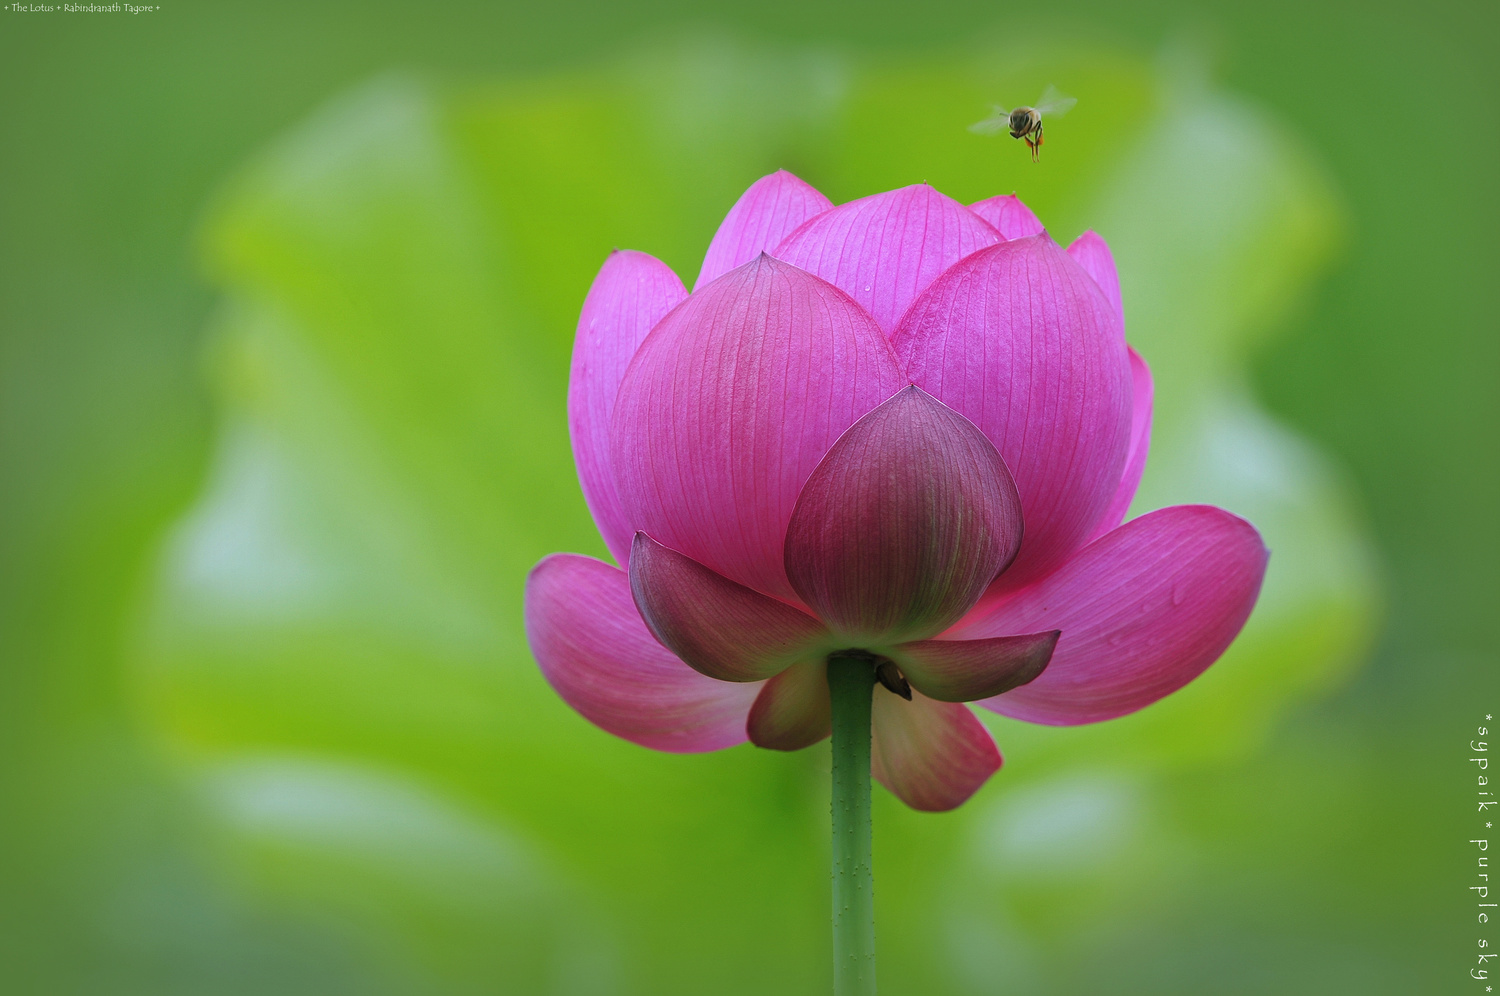 The Lotus by s y paik